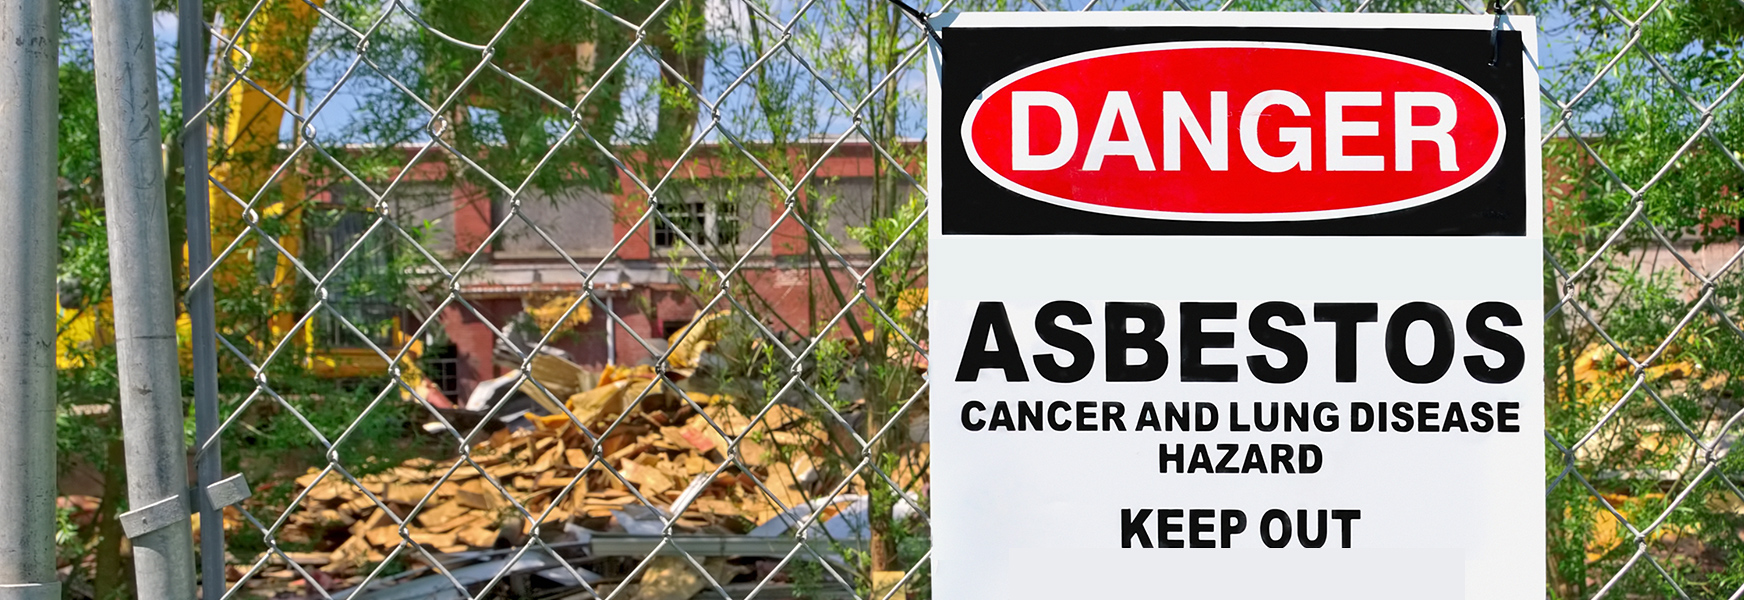 asbestos danger sign hung on fence in front of old building being demolished